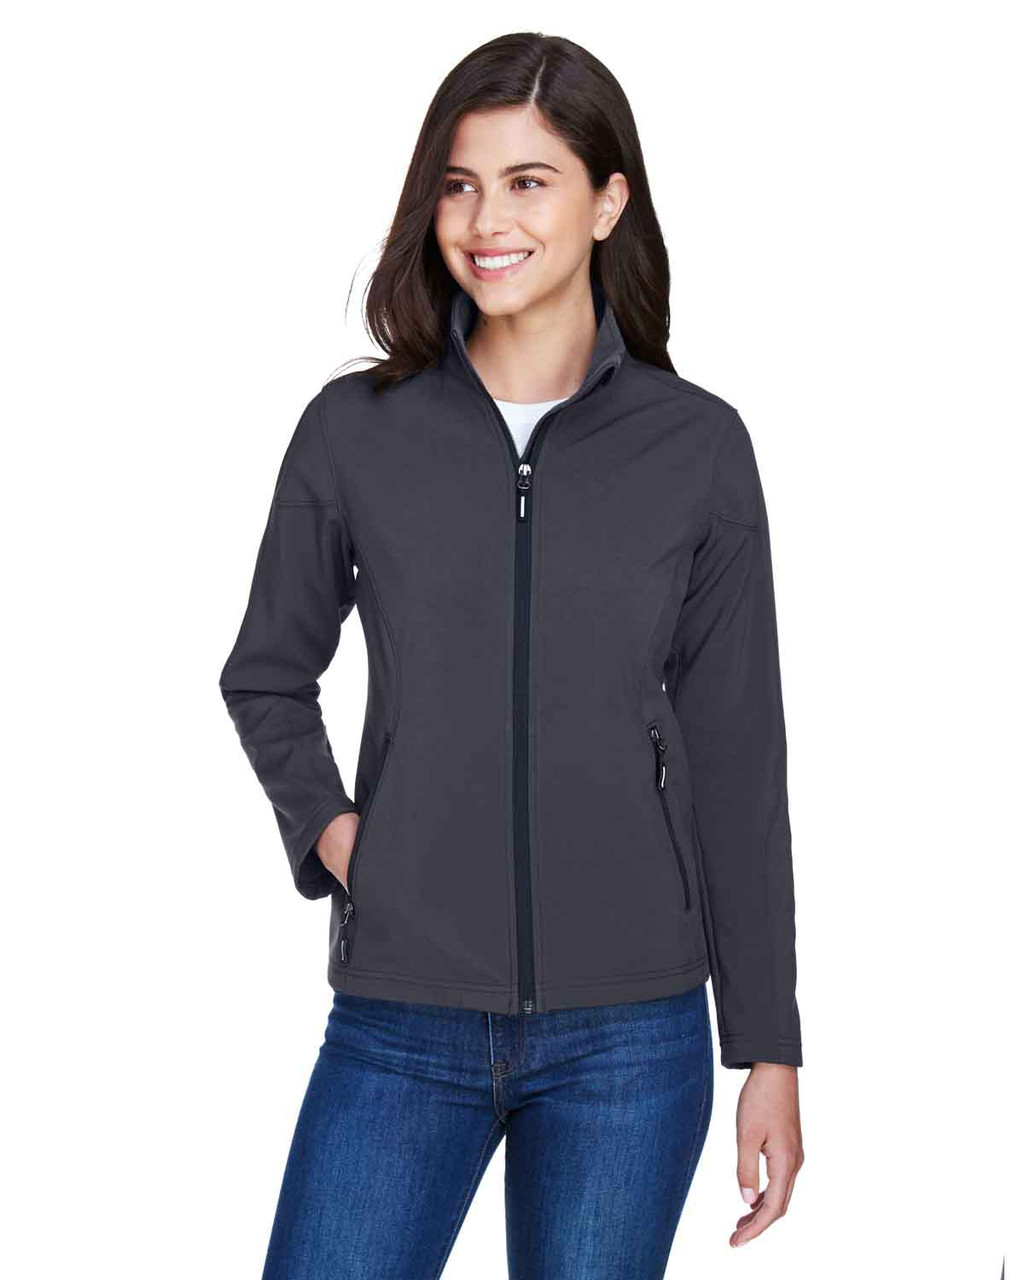 Carbon - 78184 Core 365 Ladies' Fleece Soft Shell Jacket | Blankclothing.ca